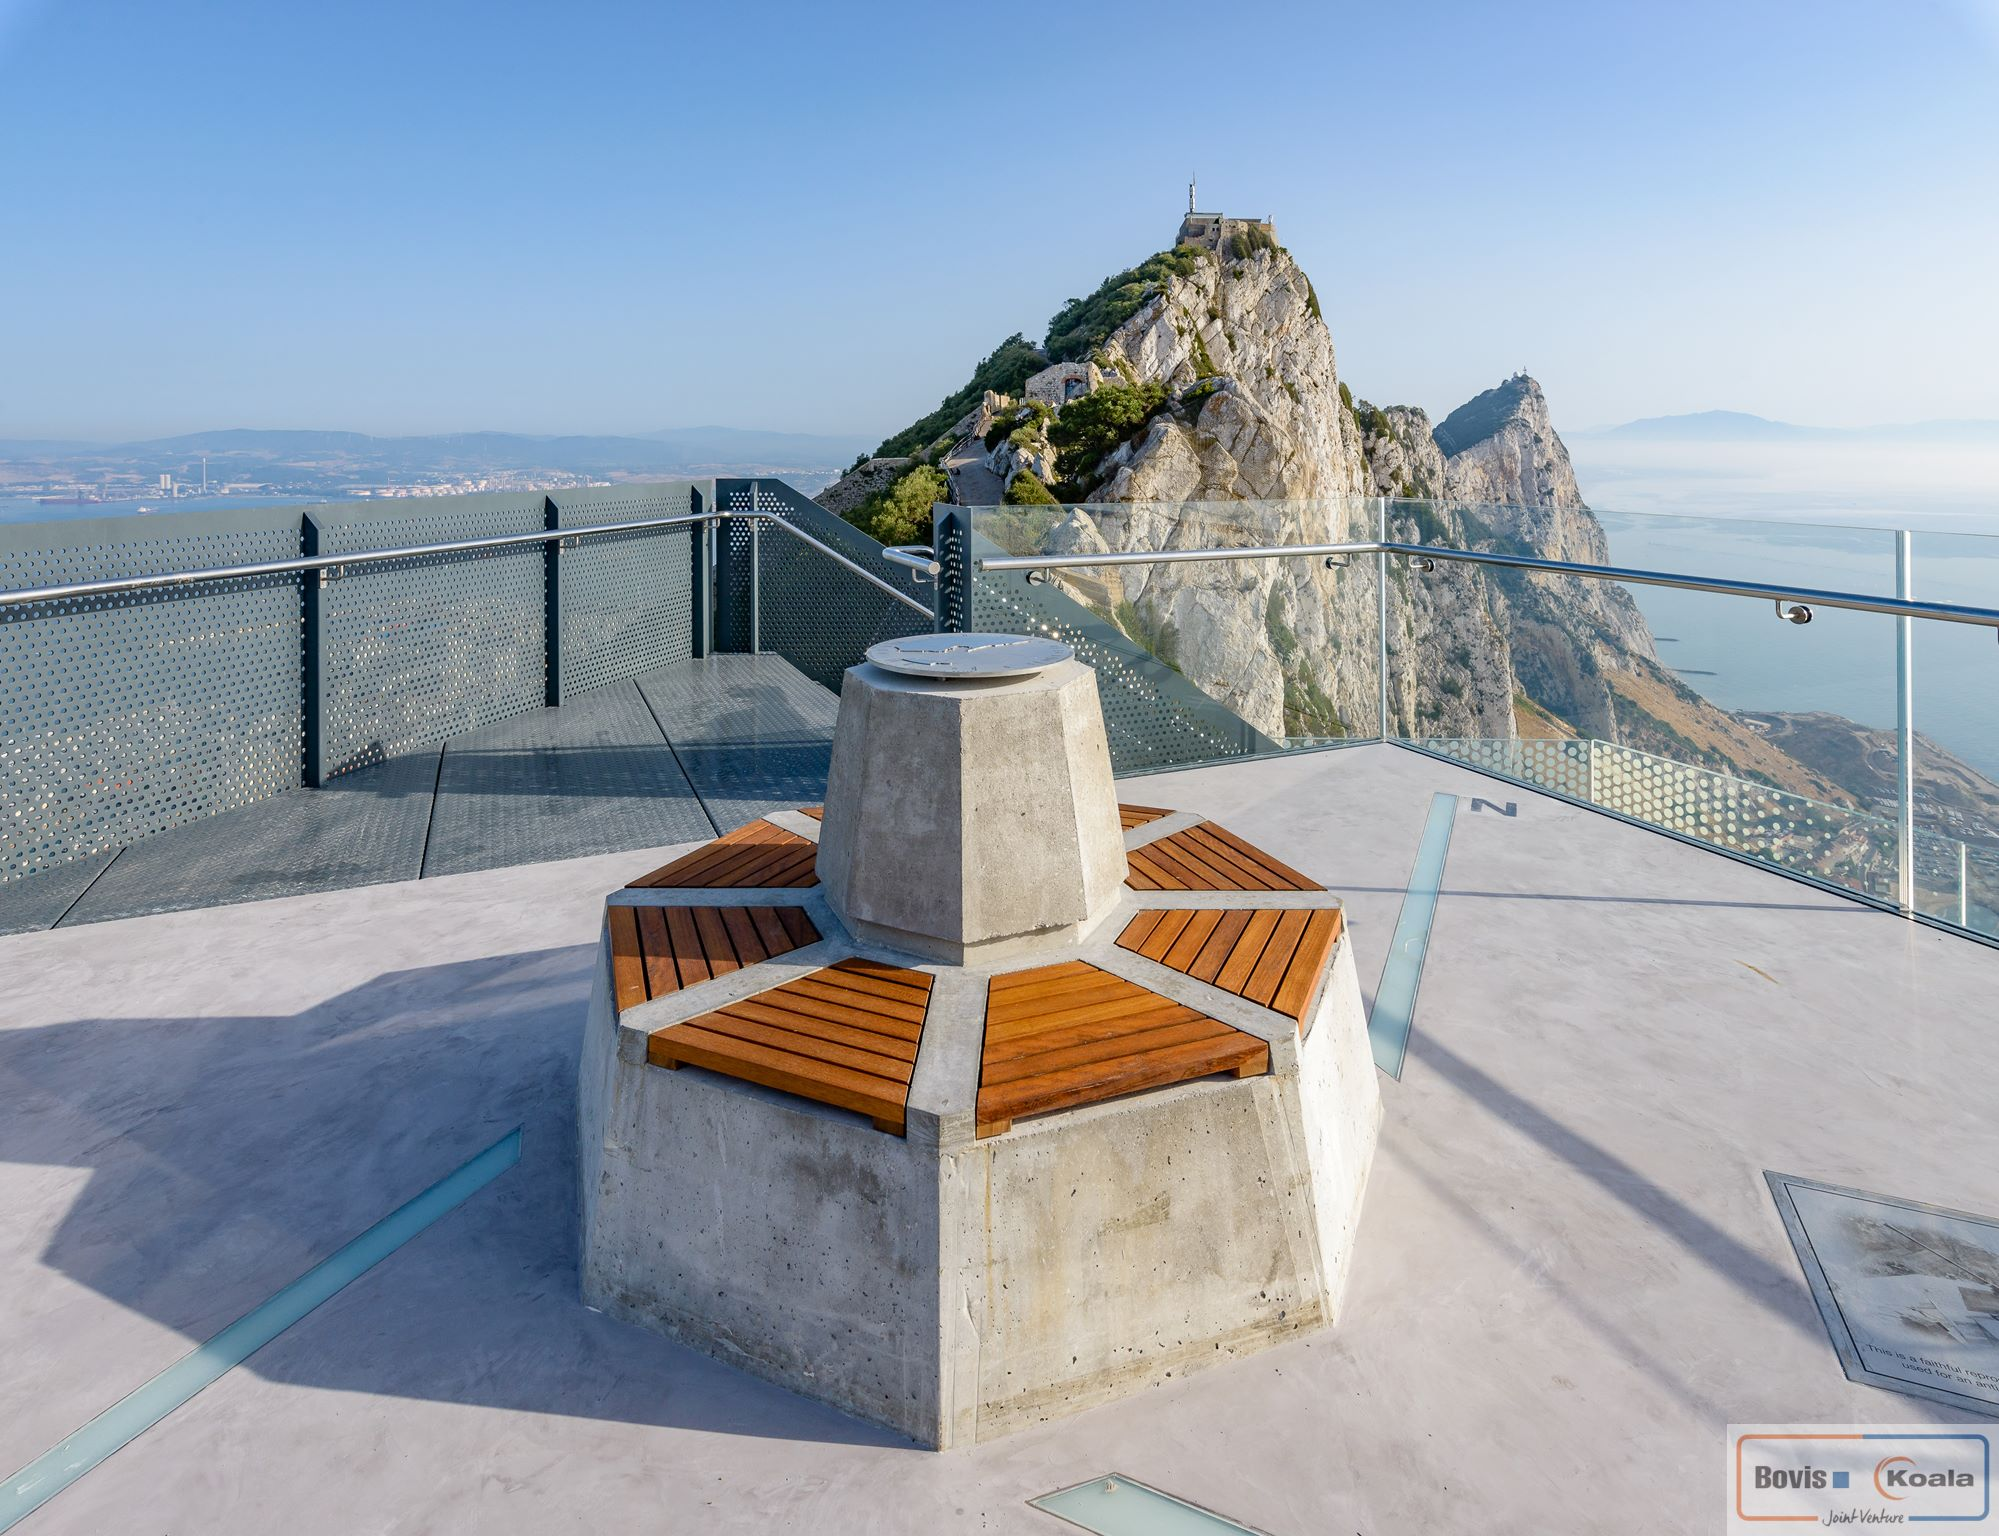 Bovis Koala Skywalk Gibraltar 15